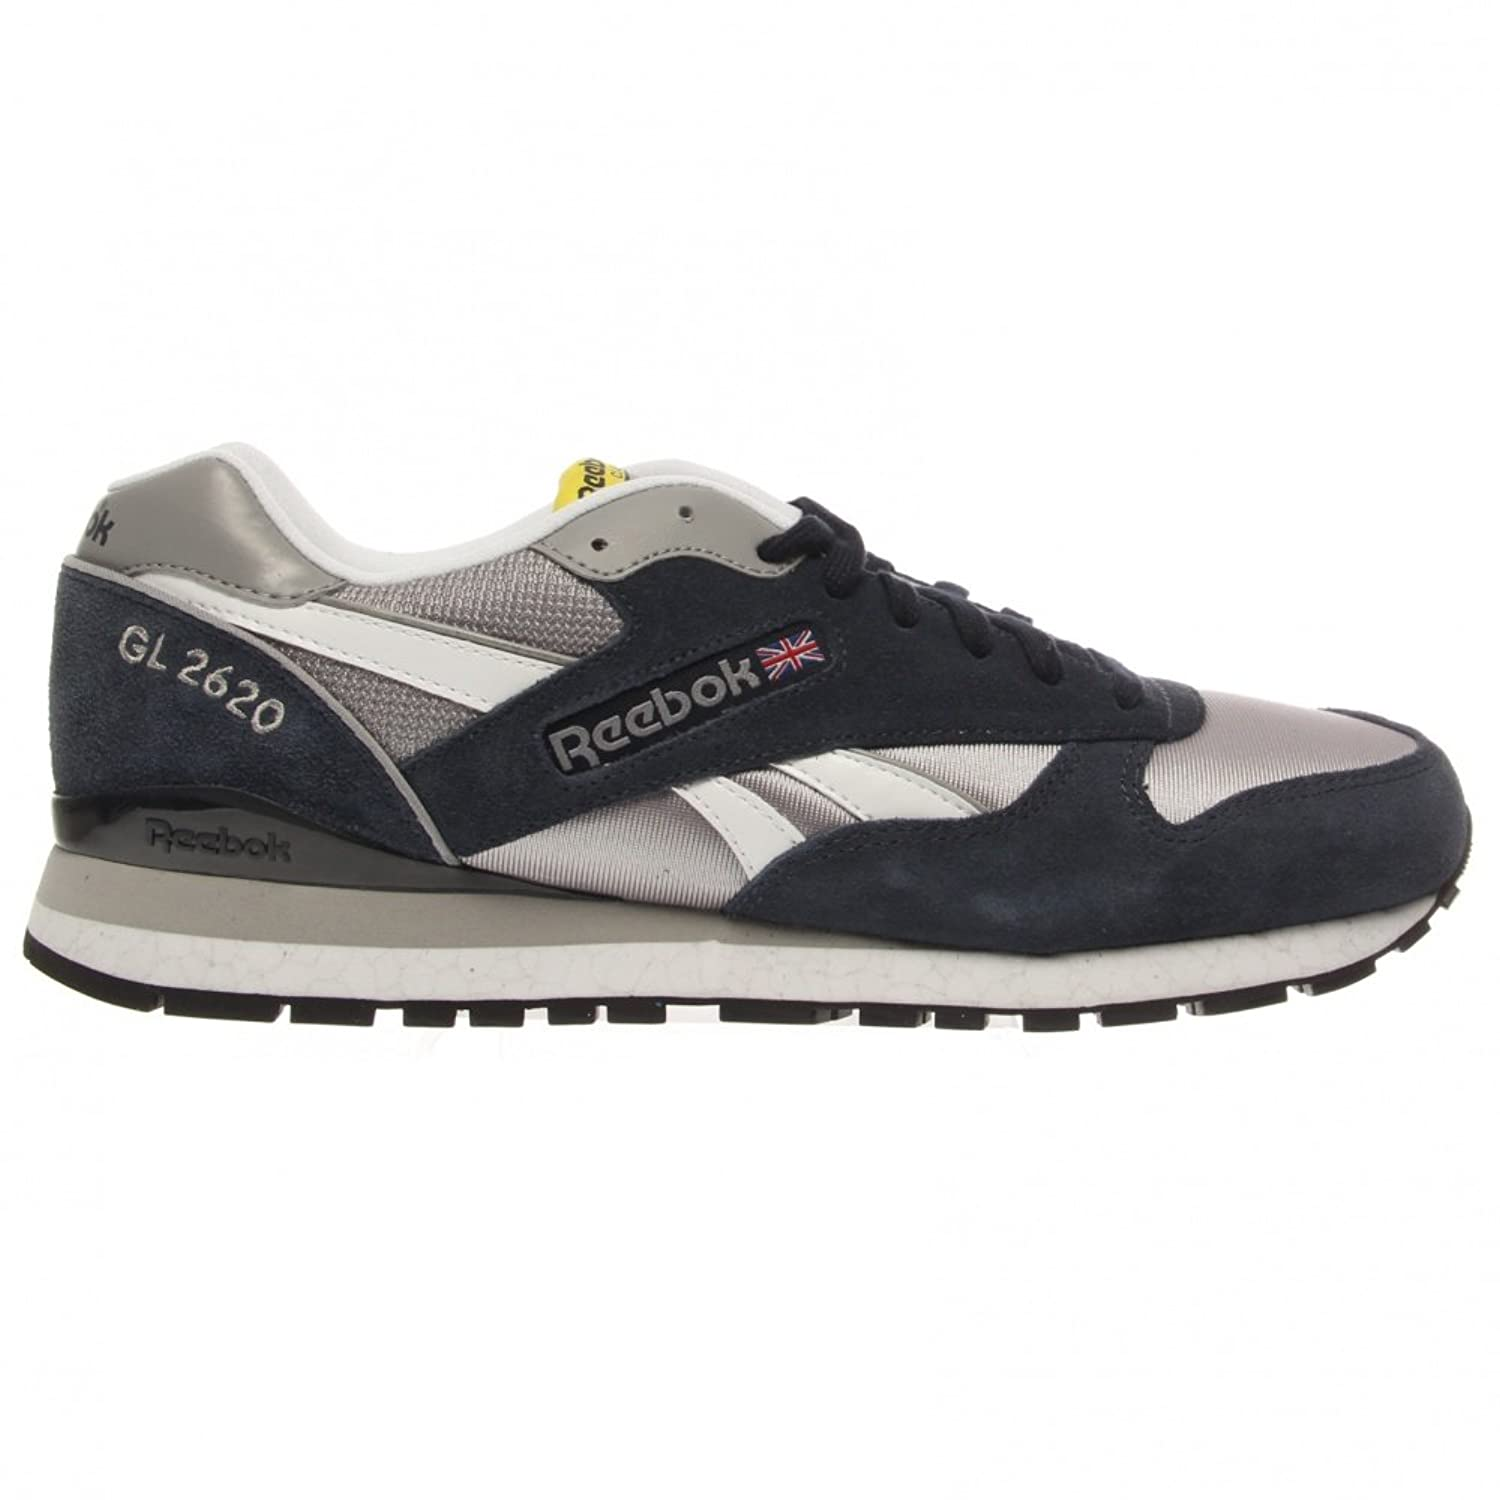 df9b136565d reebok gl 2620 womens price cheap   OFF48% The Largest Catalog Discounts